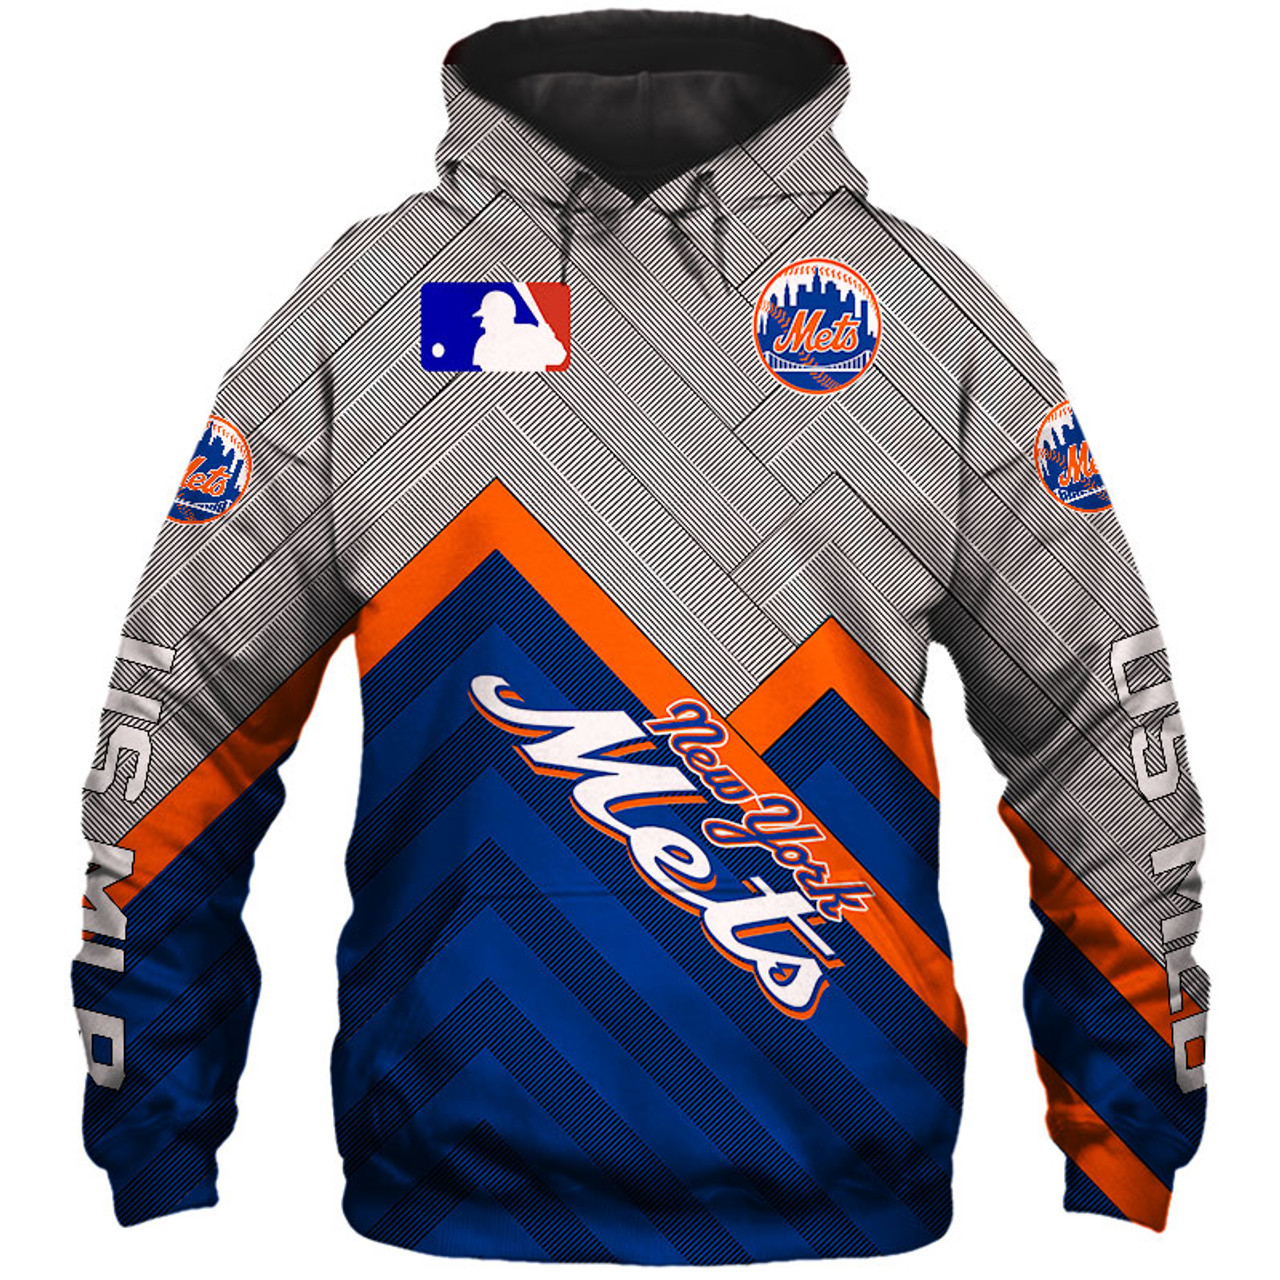 quality design 0344d 67bf8 **(OFFICIAL-M.L.B.NEW-YORK-METS-TEAM-PULLOVER-HOODIES/CUSTOM-DETAILED-3D-GRAPHIC-PRINTED/PREMIUM-ALL-OVER-DOUBLE-SIDED-PRINT/OFFICIAL-METS-TEAM-COLORS  ...